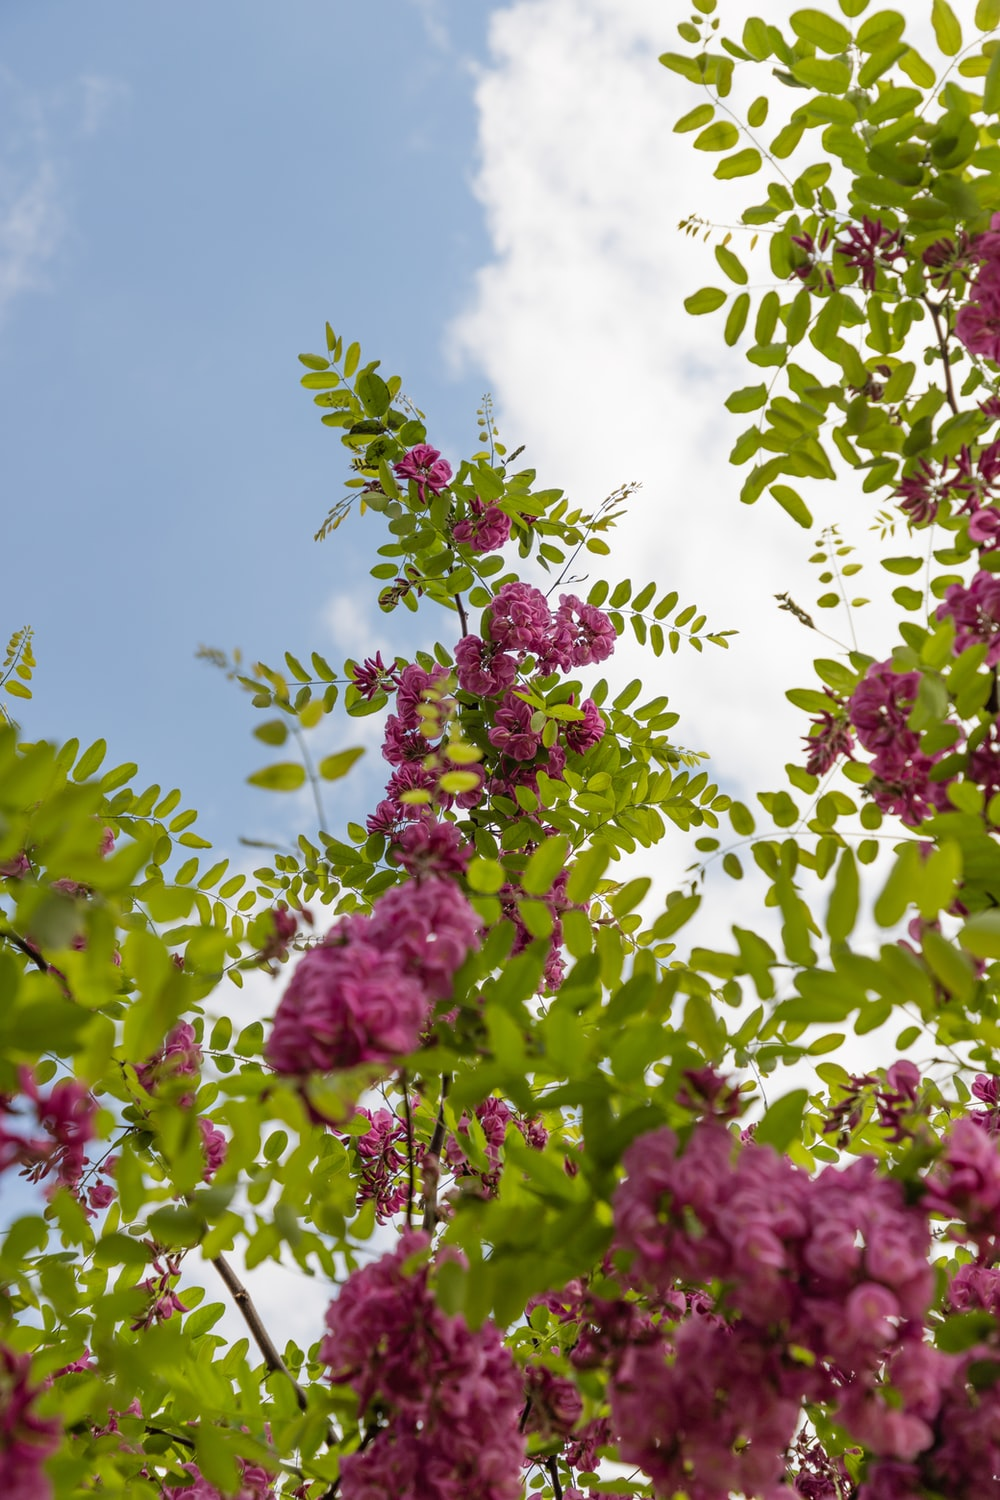 pink flowers with green leaves under blue sky during daytime